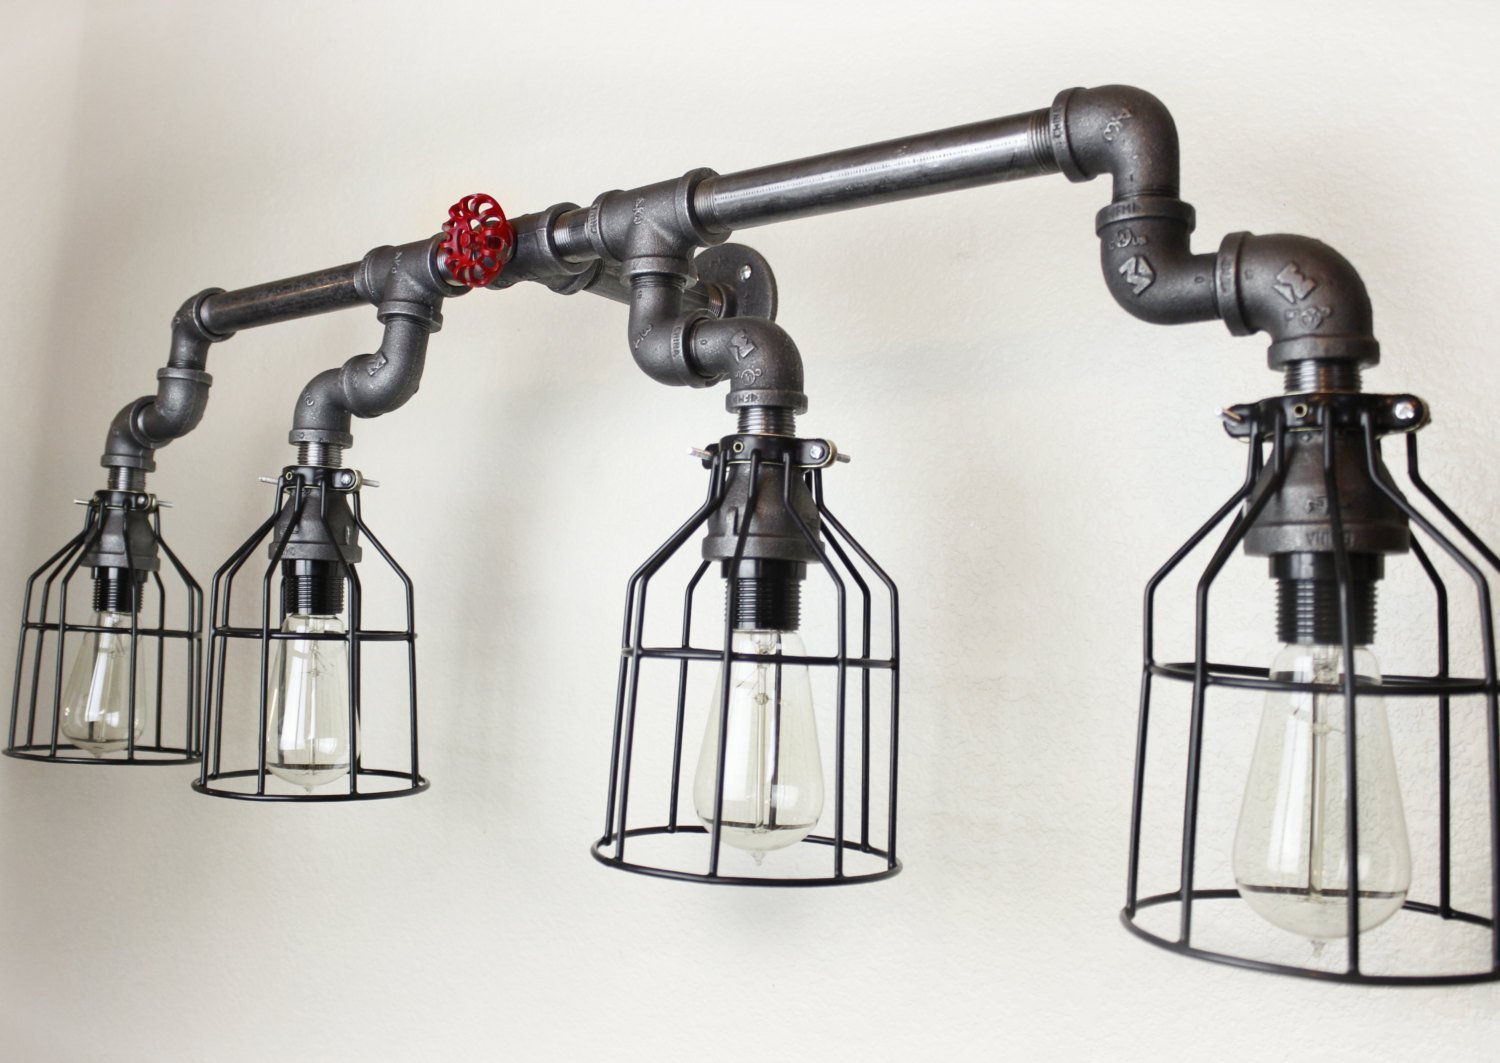 Wall sconce industrial lighting w cages black pipe bathroom